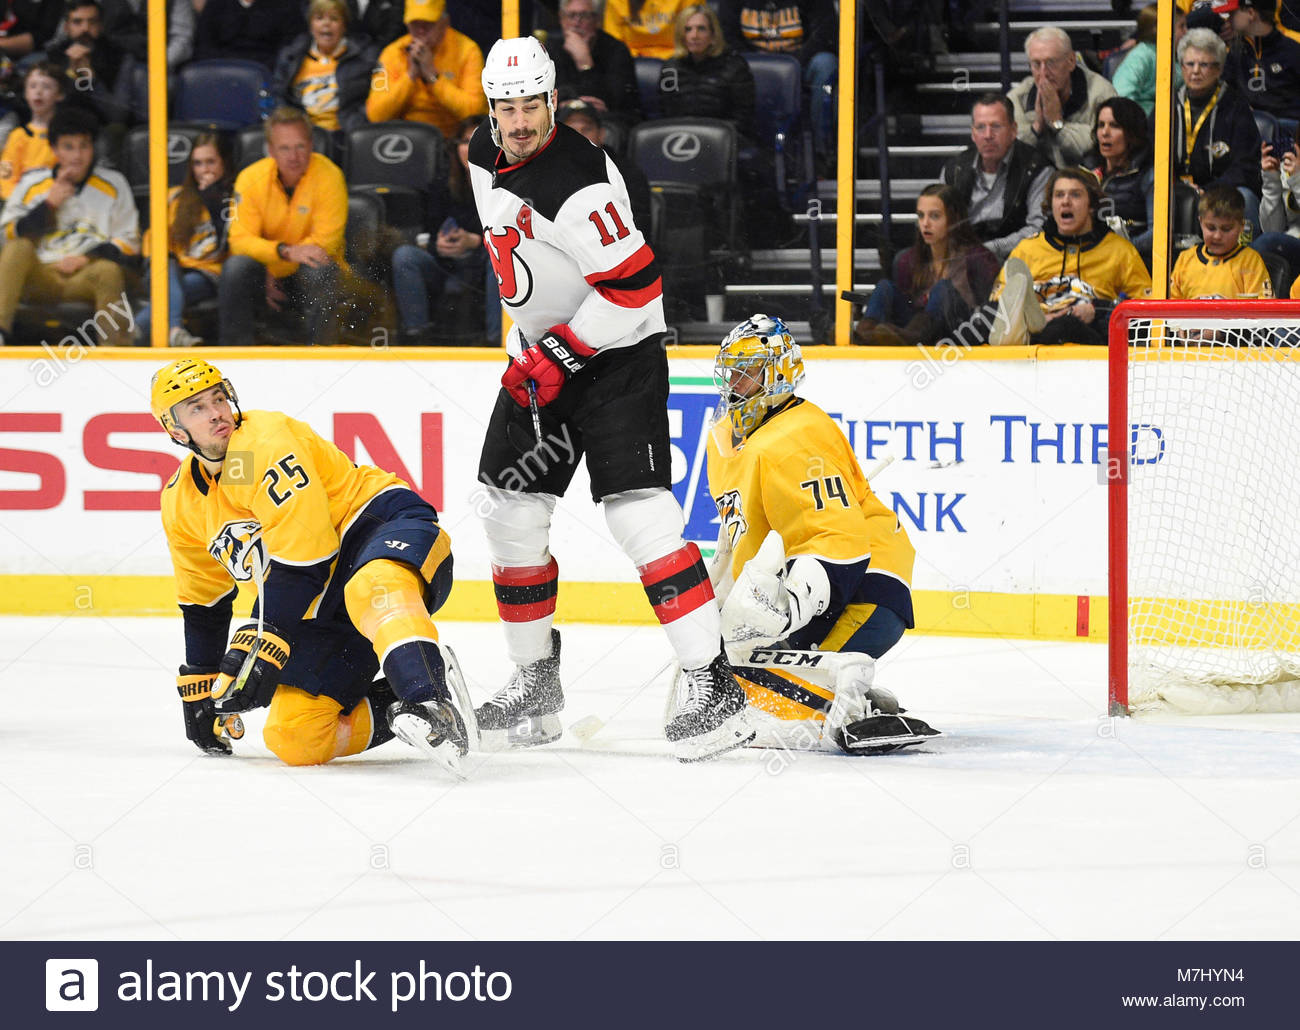 Bridgestone Arena. 10th Mar, 2018. USA New Jersey Devils center Brian Boyle (11) deflects the puck past Nashville - Stock Image